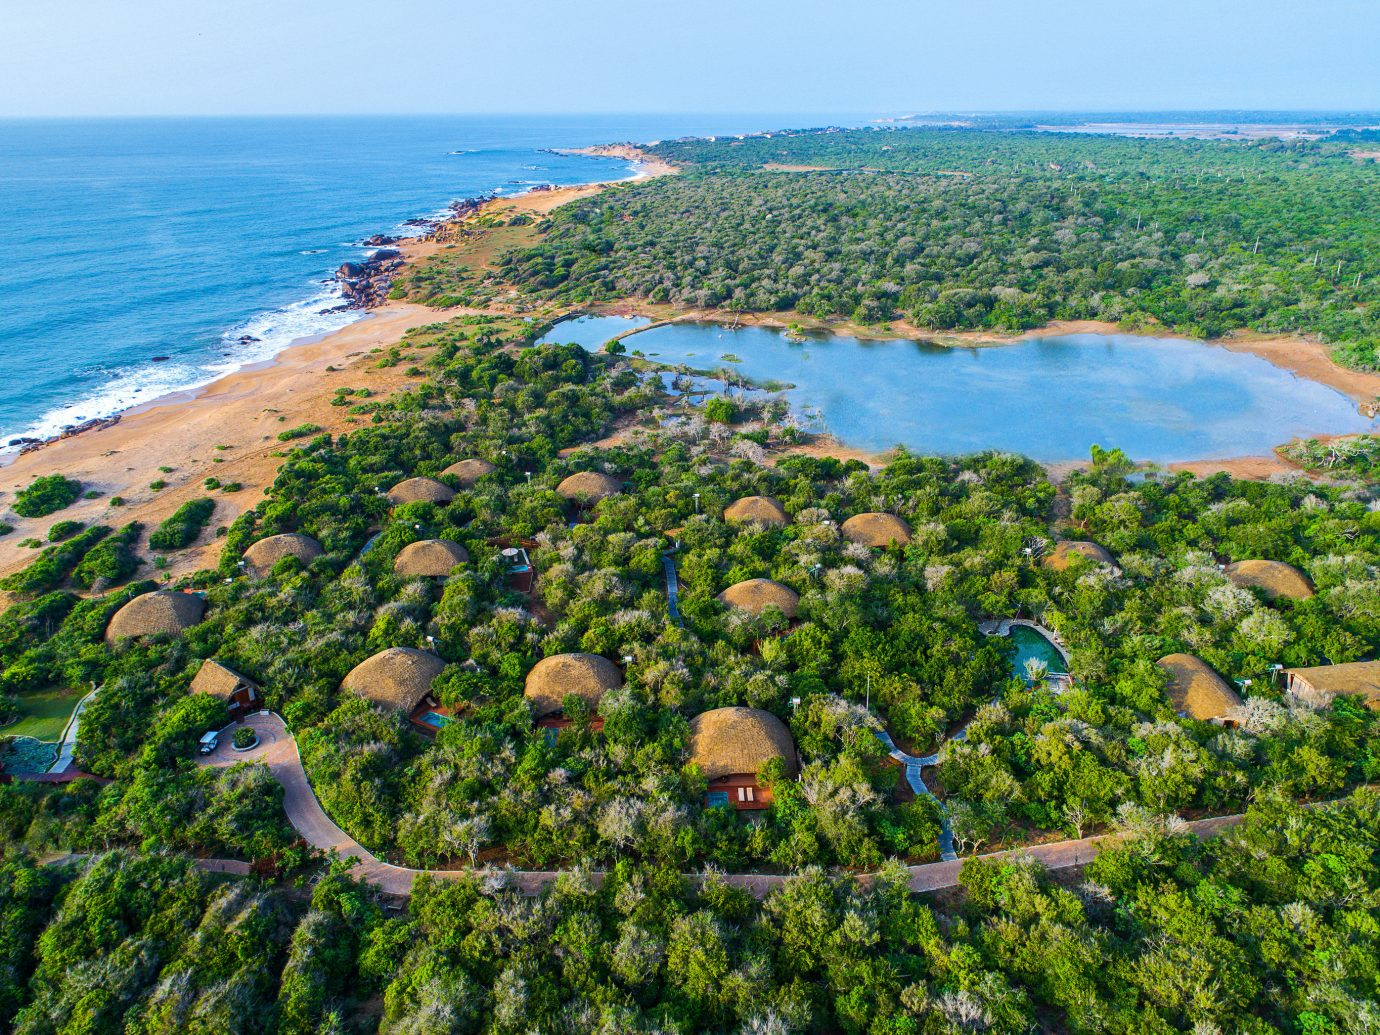 All-Inclusive Resorts Hotels Luxury Travel outdoor sky water vegetation Nature Coast nature reserve promontory Sea aerial photography bird's eye view bay reef tree tourism shore